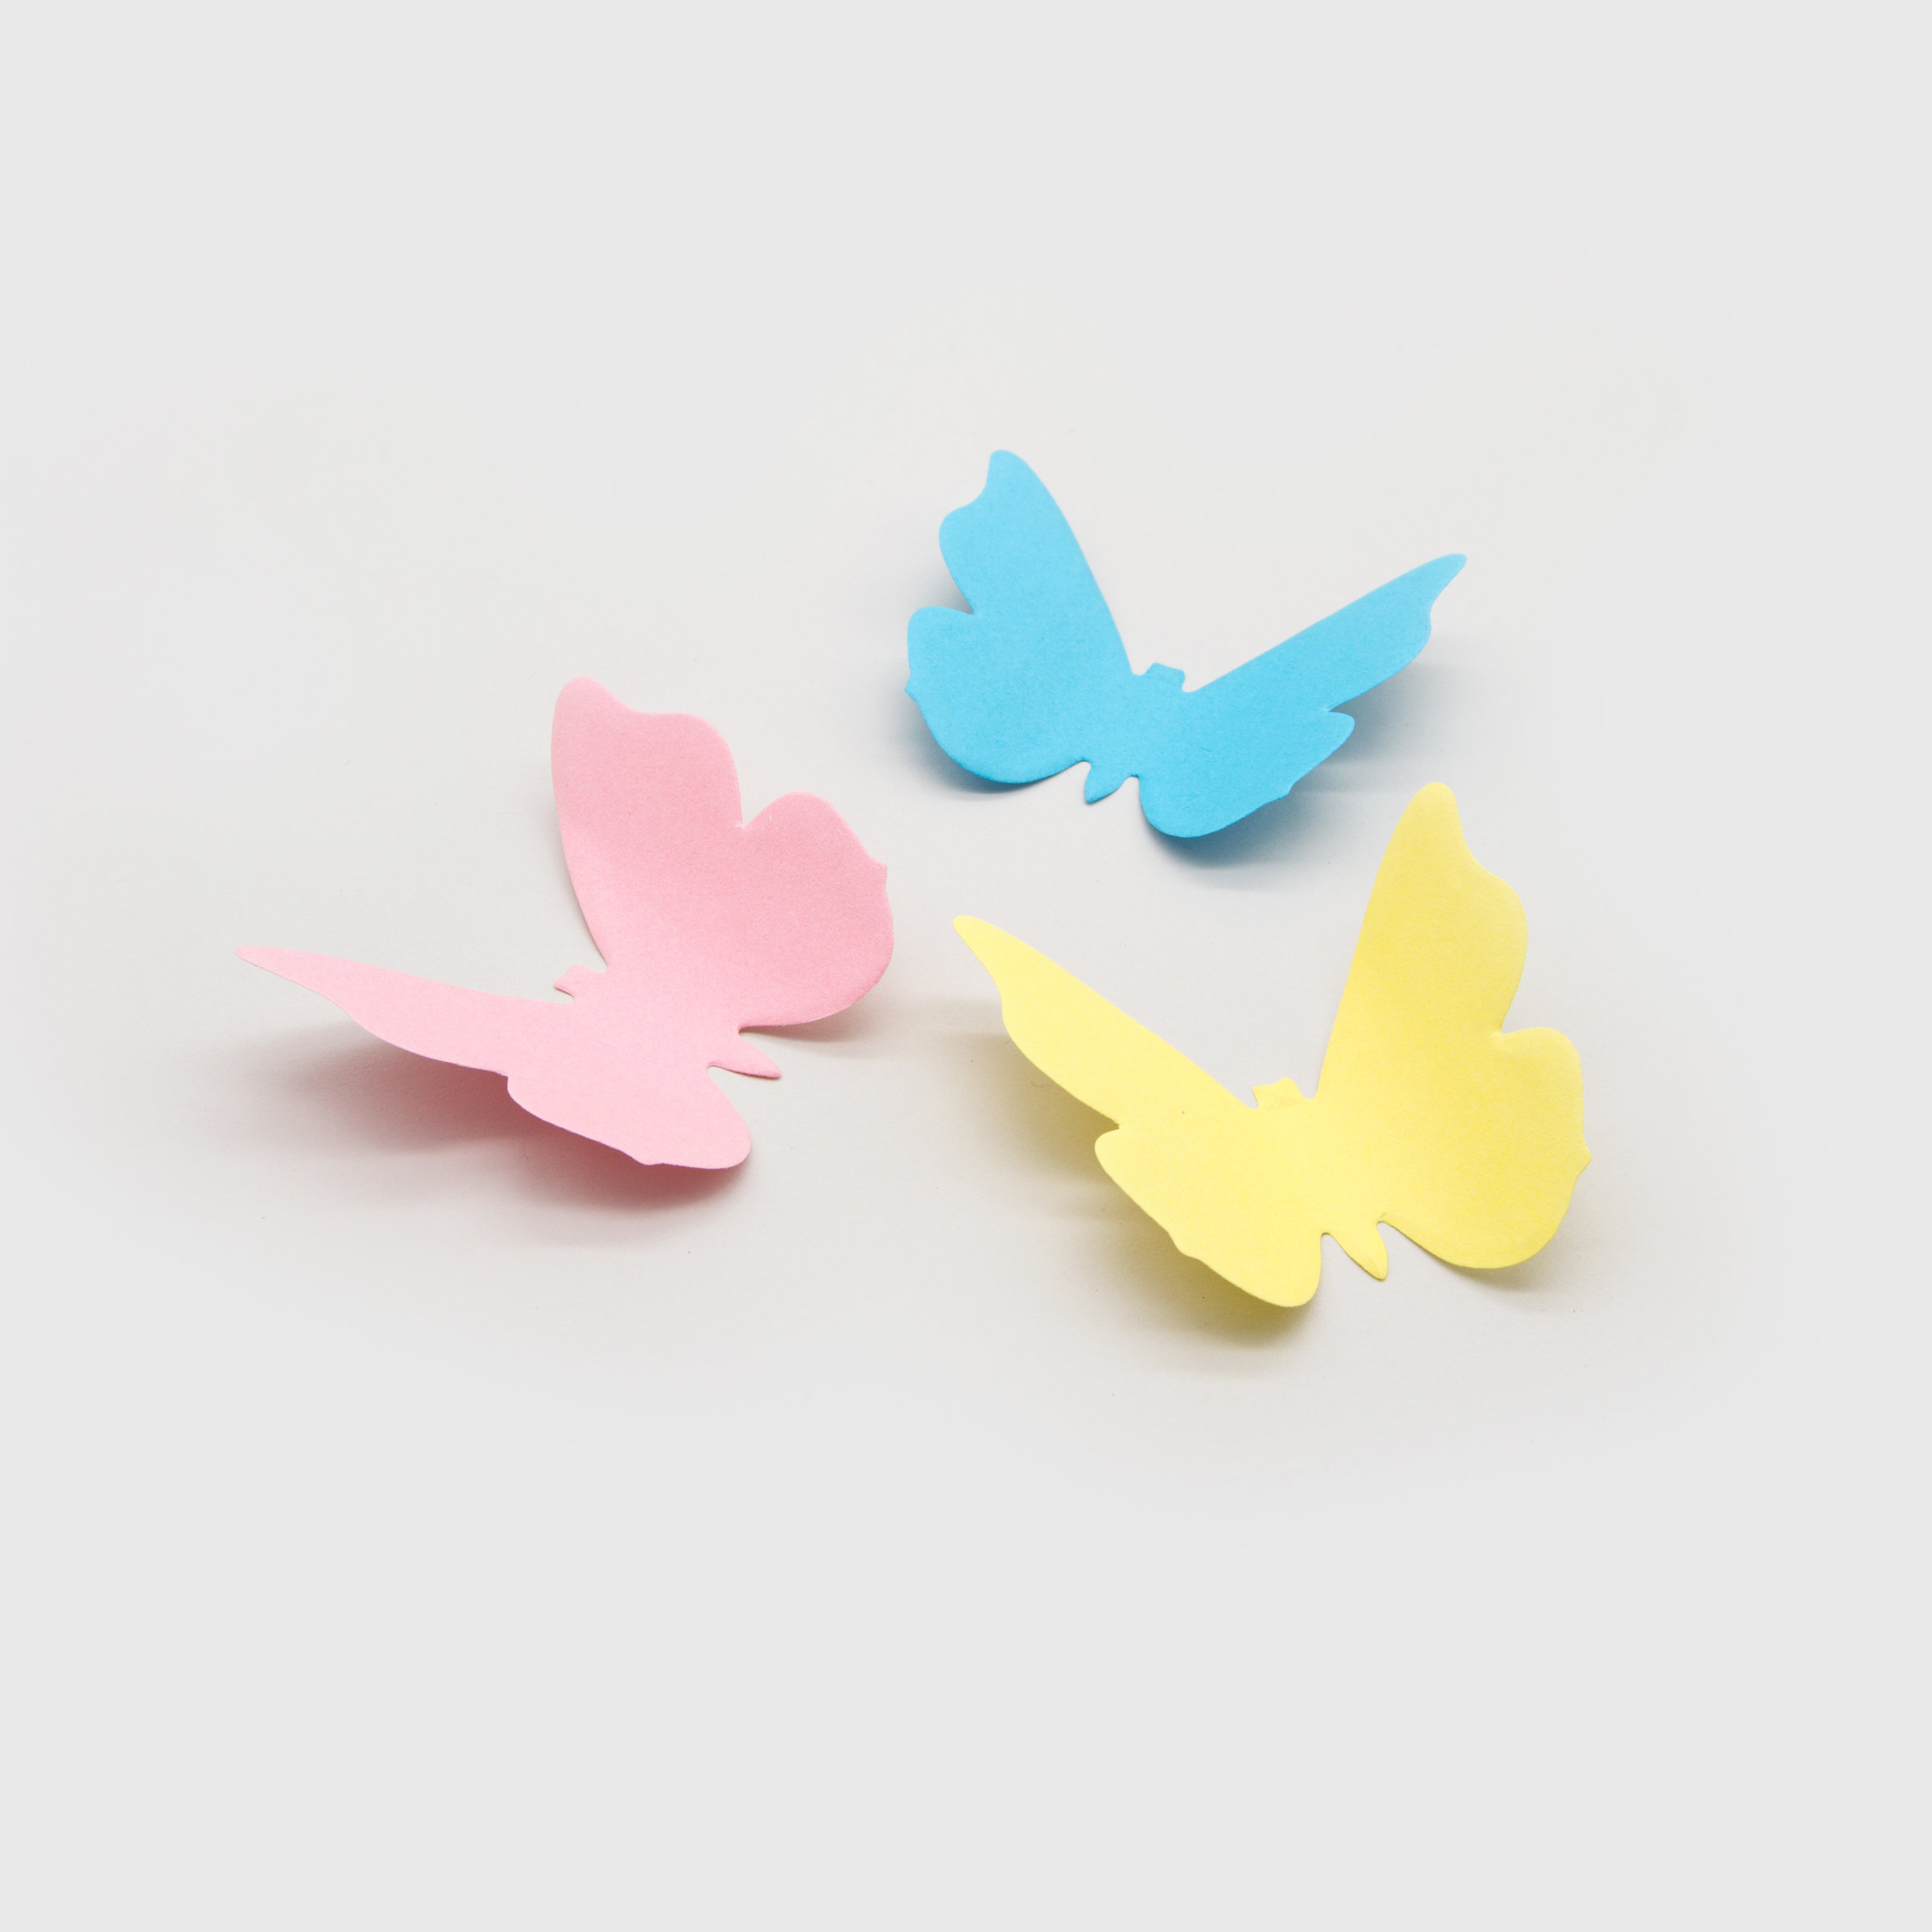 3D butterfly sticky notes in pink, blue and yellow